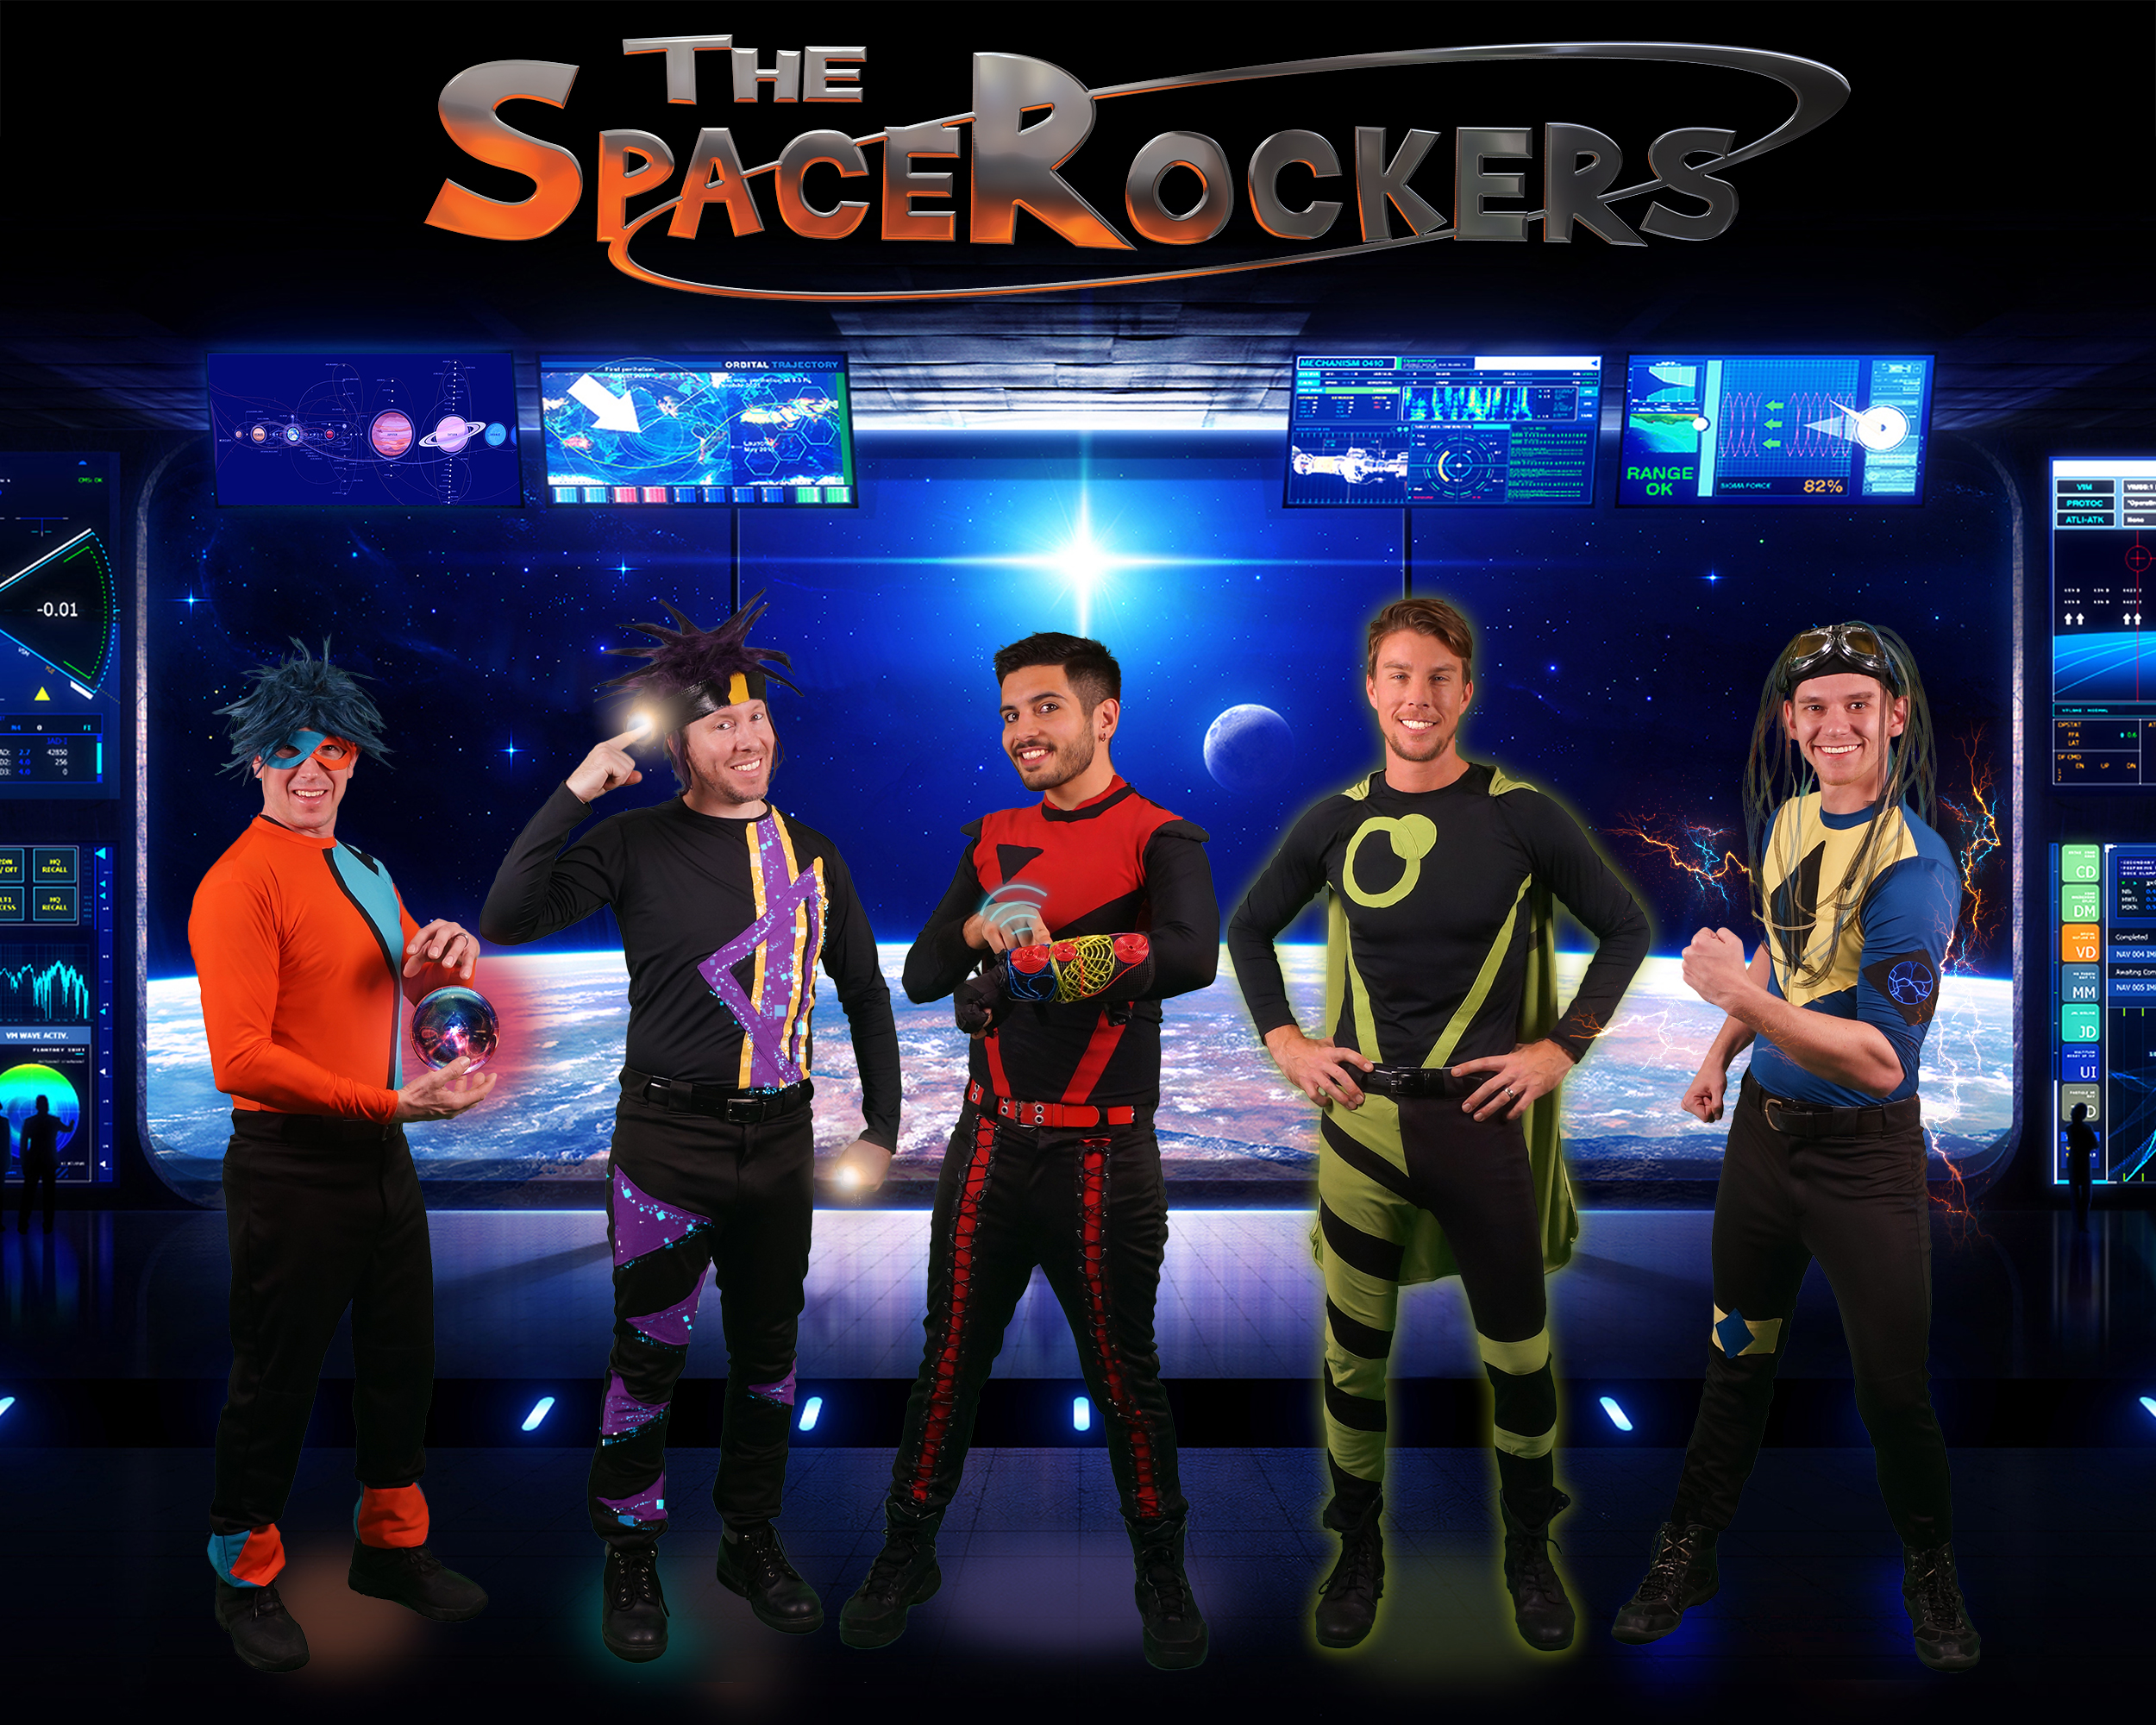 The-Space-Rockers-Promo01